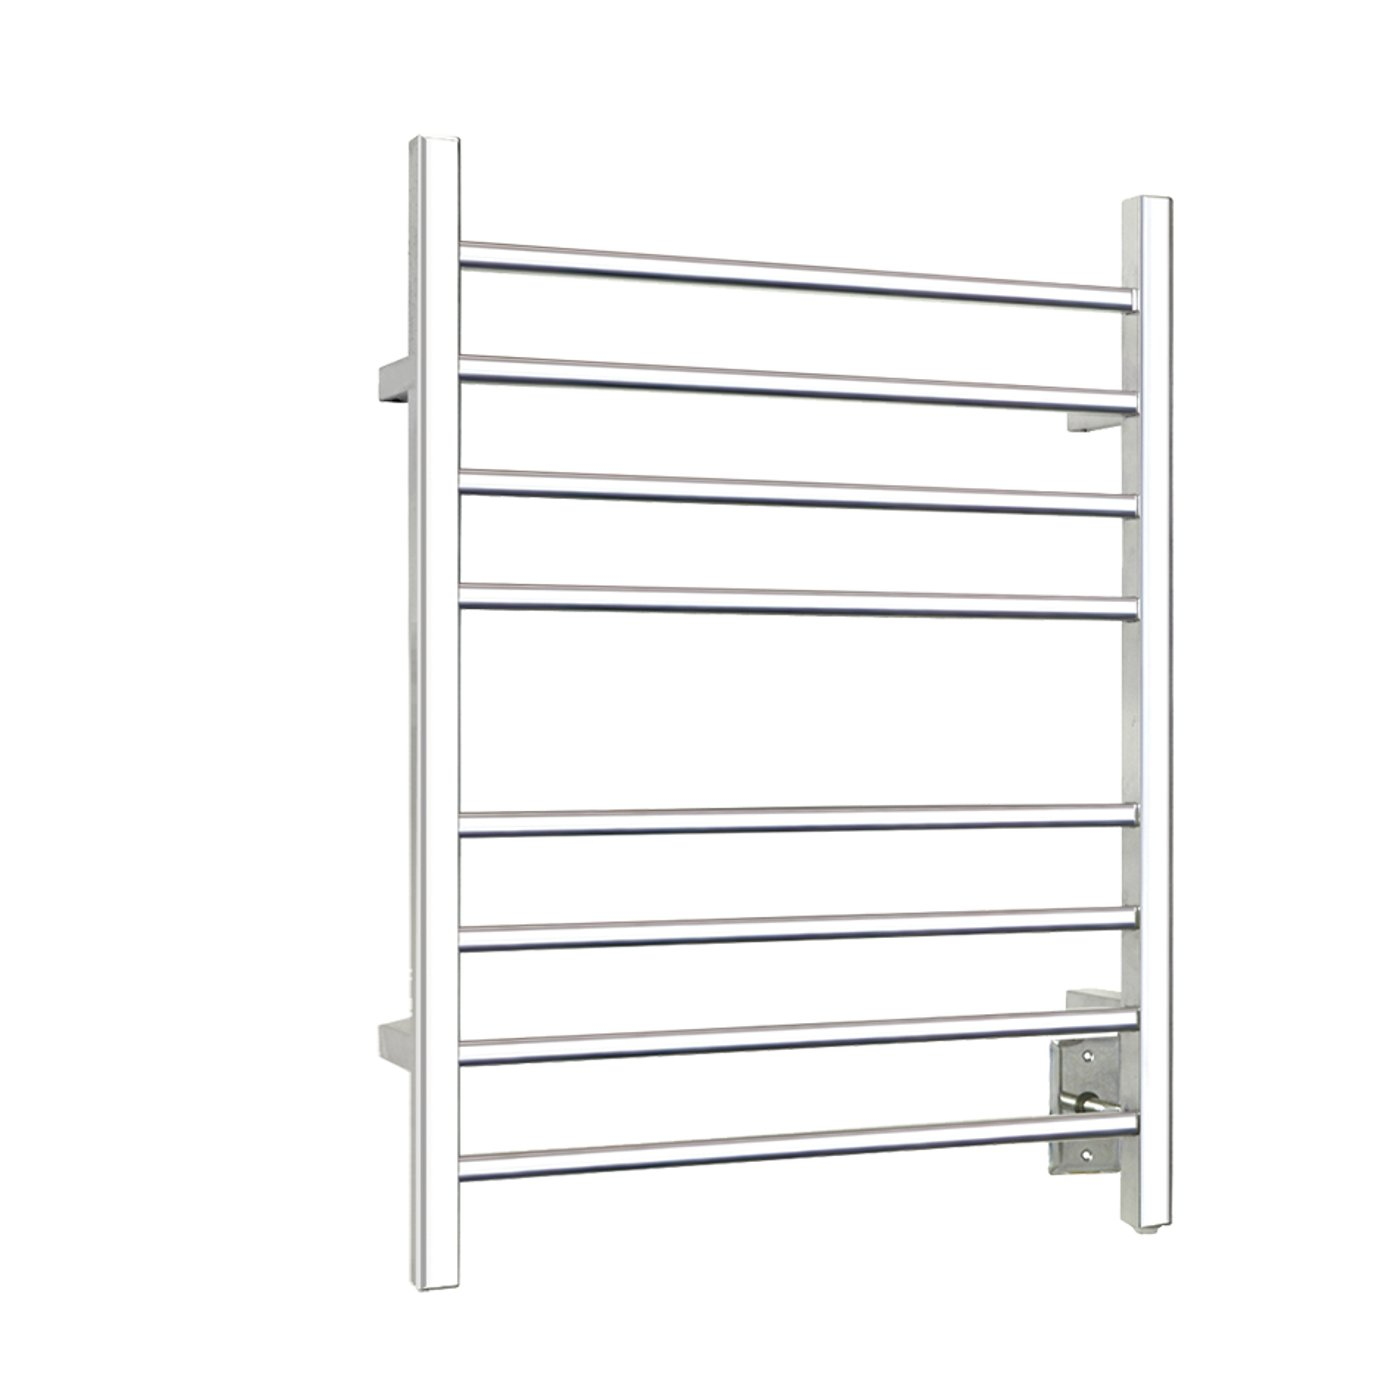 Towe warmer and switch wiring diagram dolgular electric towel warmers towel rails for hotels guesthouses asfbconference2016 Choice Image